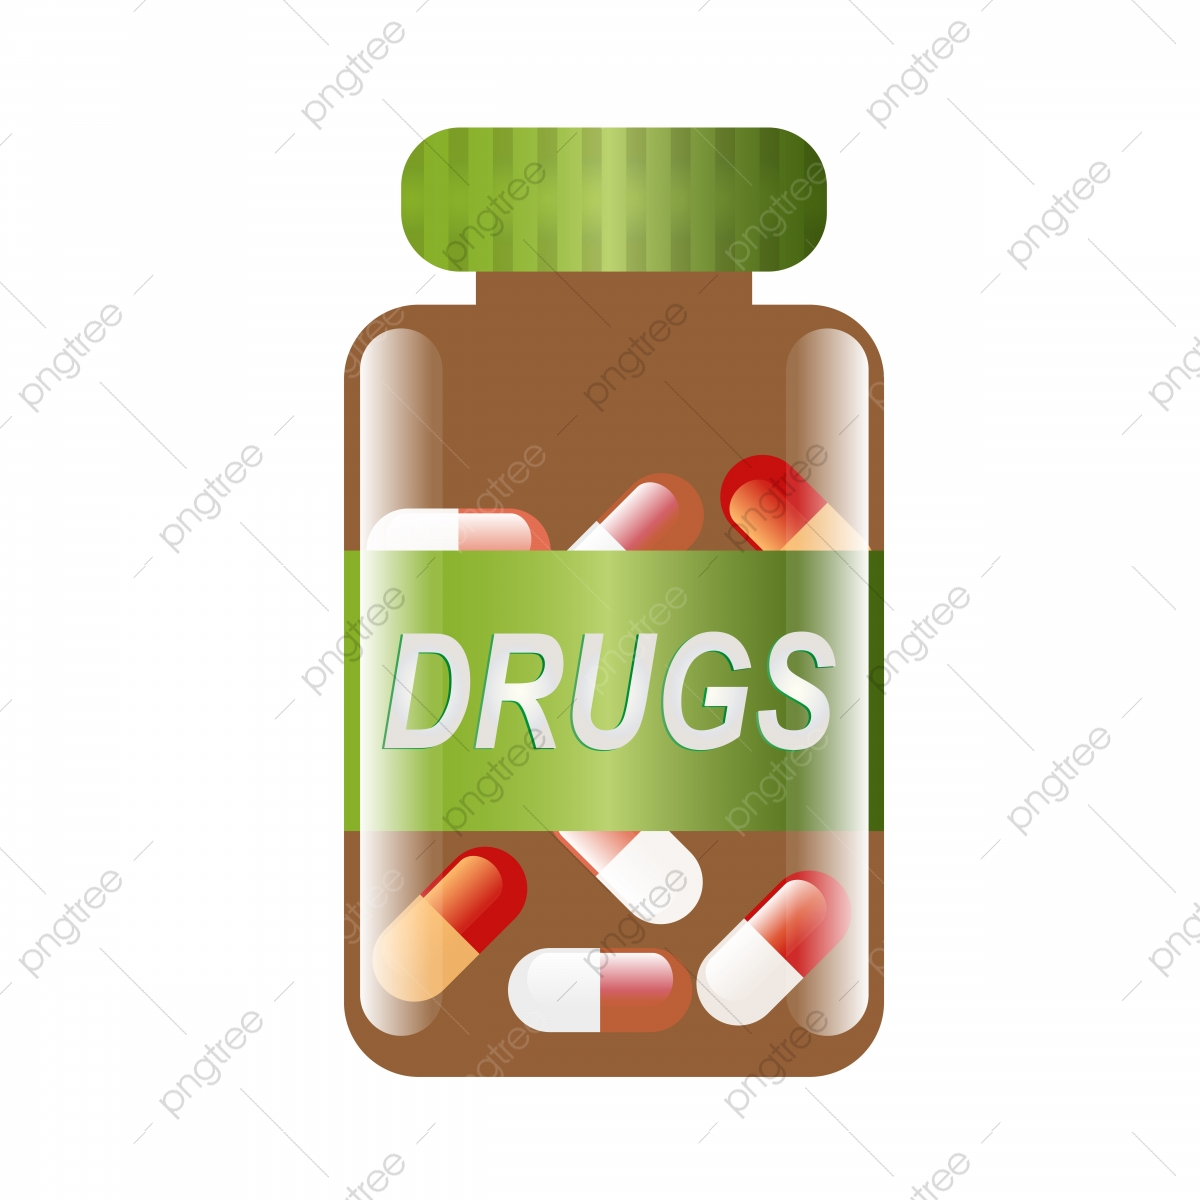 20+ Drugs Vector